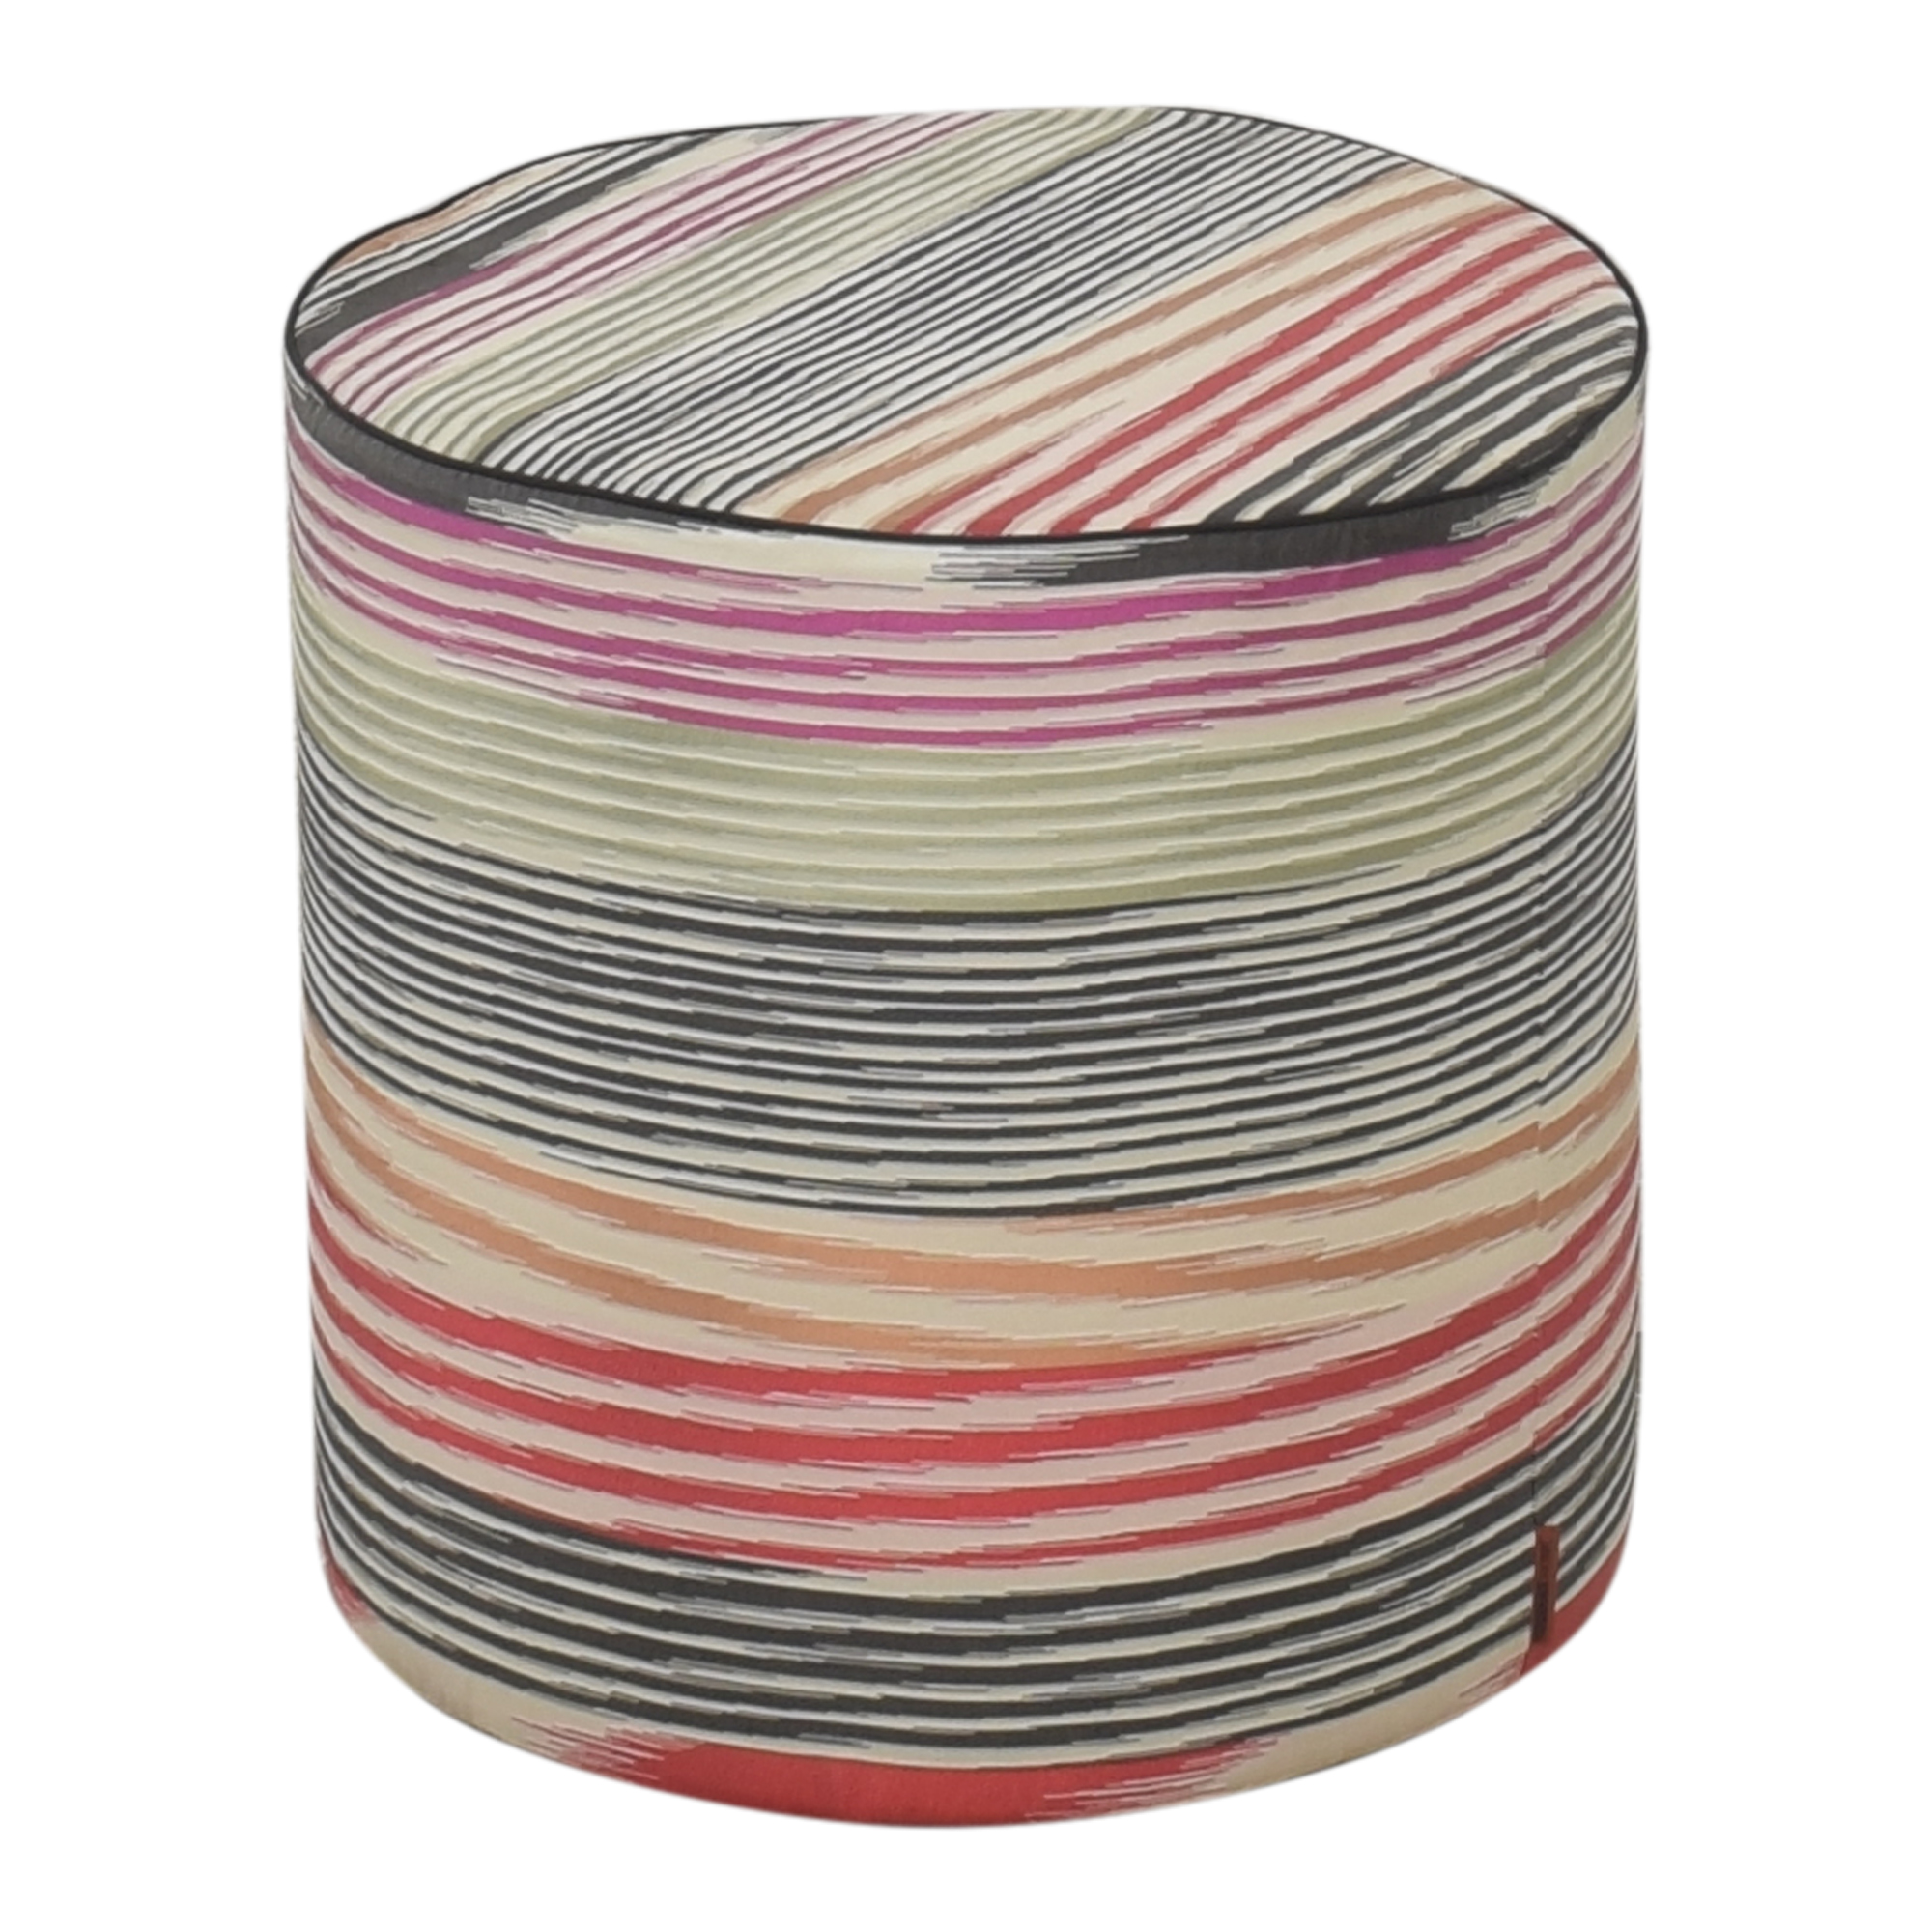 Missoni Missoni Home Cylinder Pouf on sale